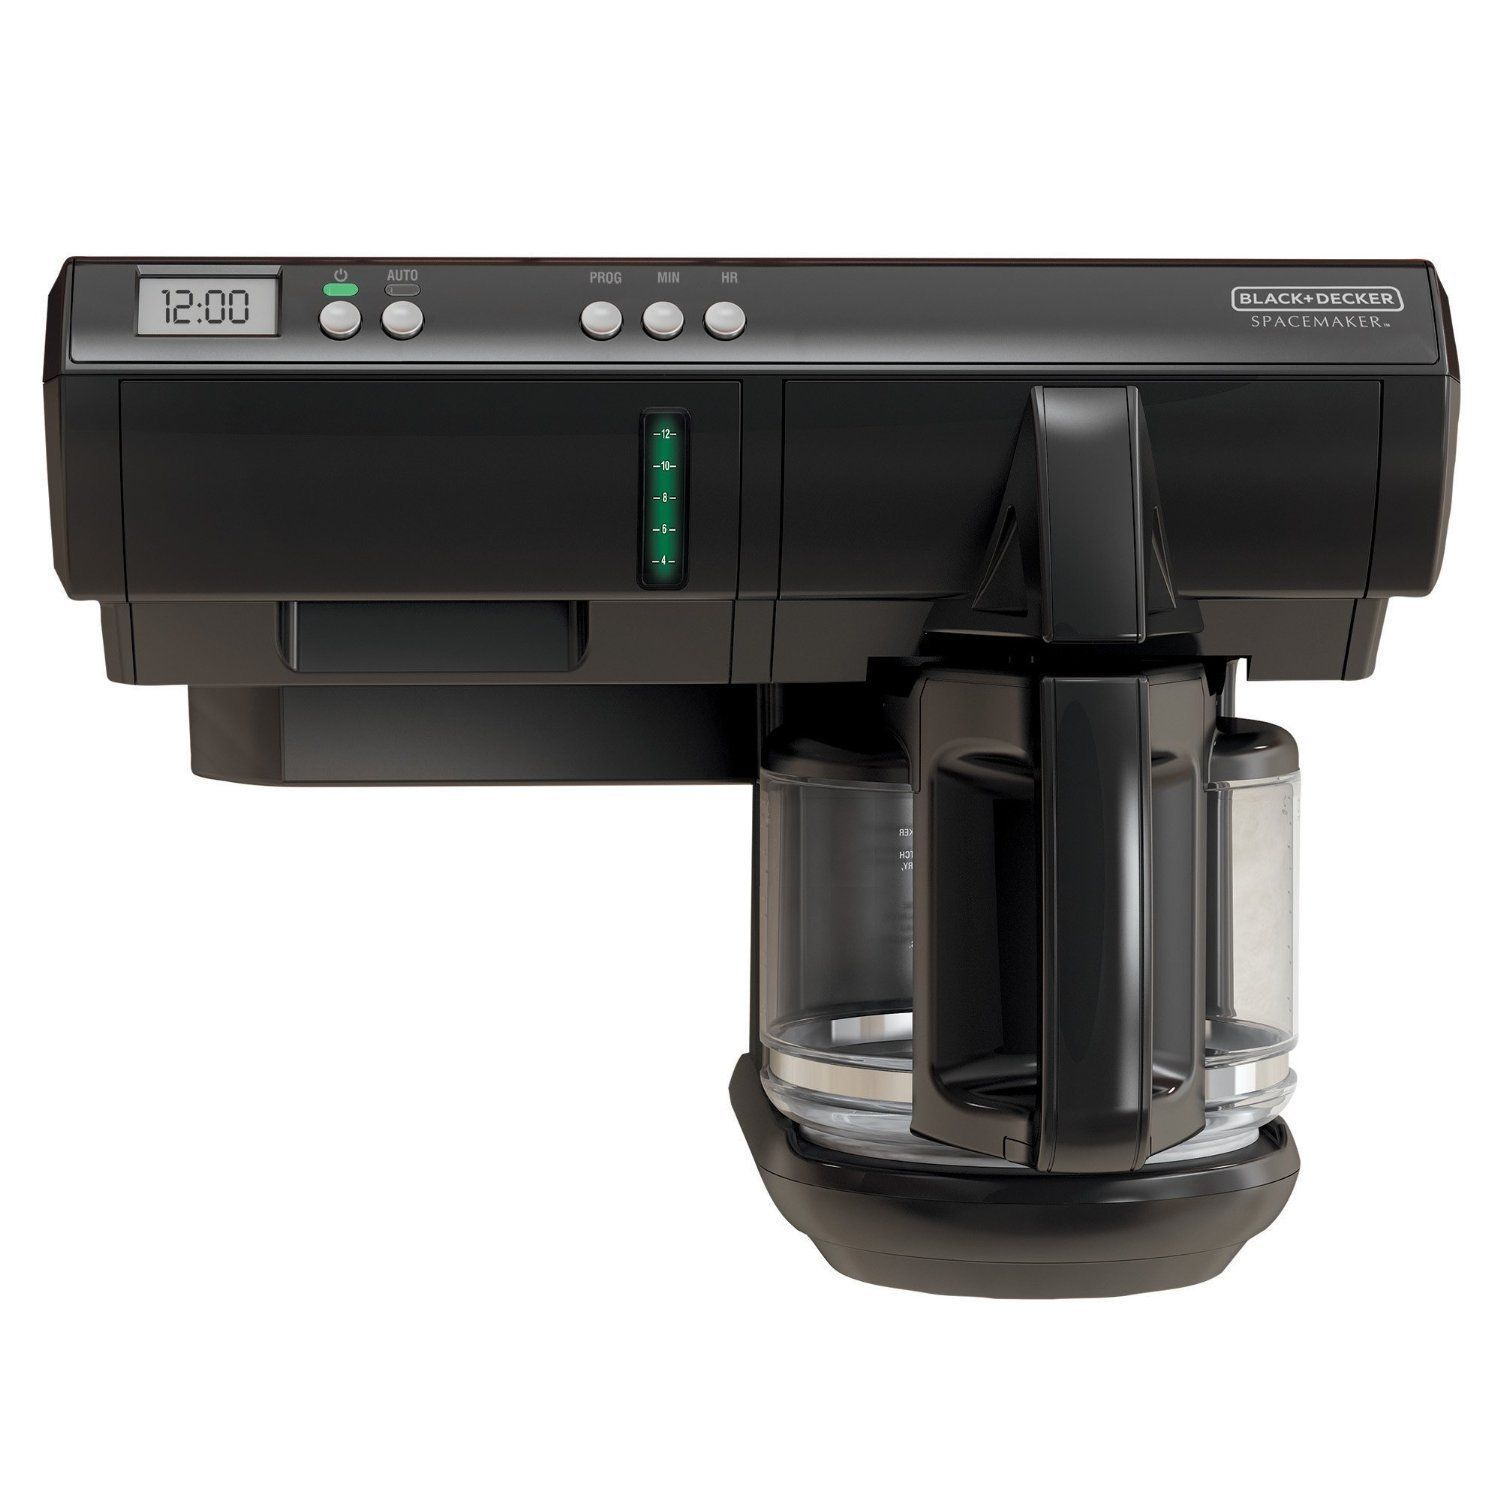 Black u decker black cup spacemaker programmable coffeemaker